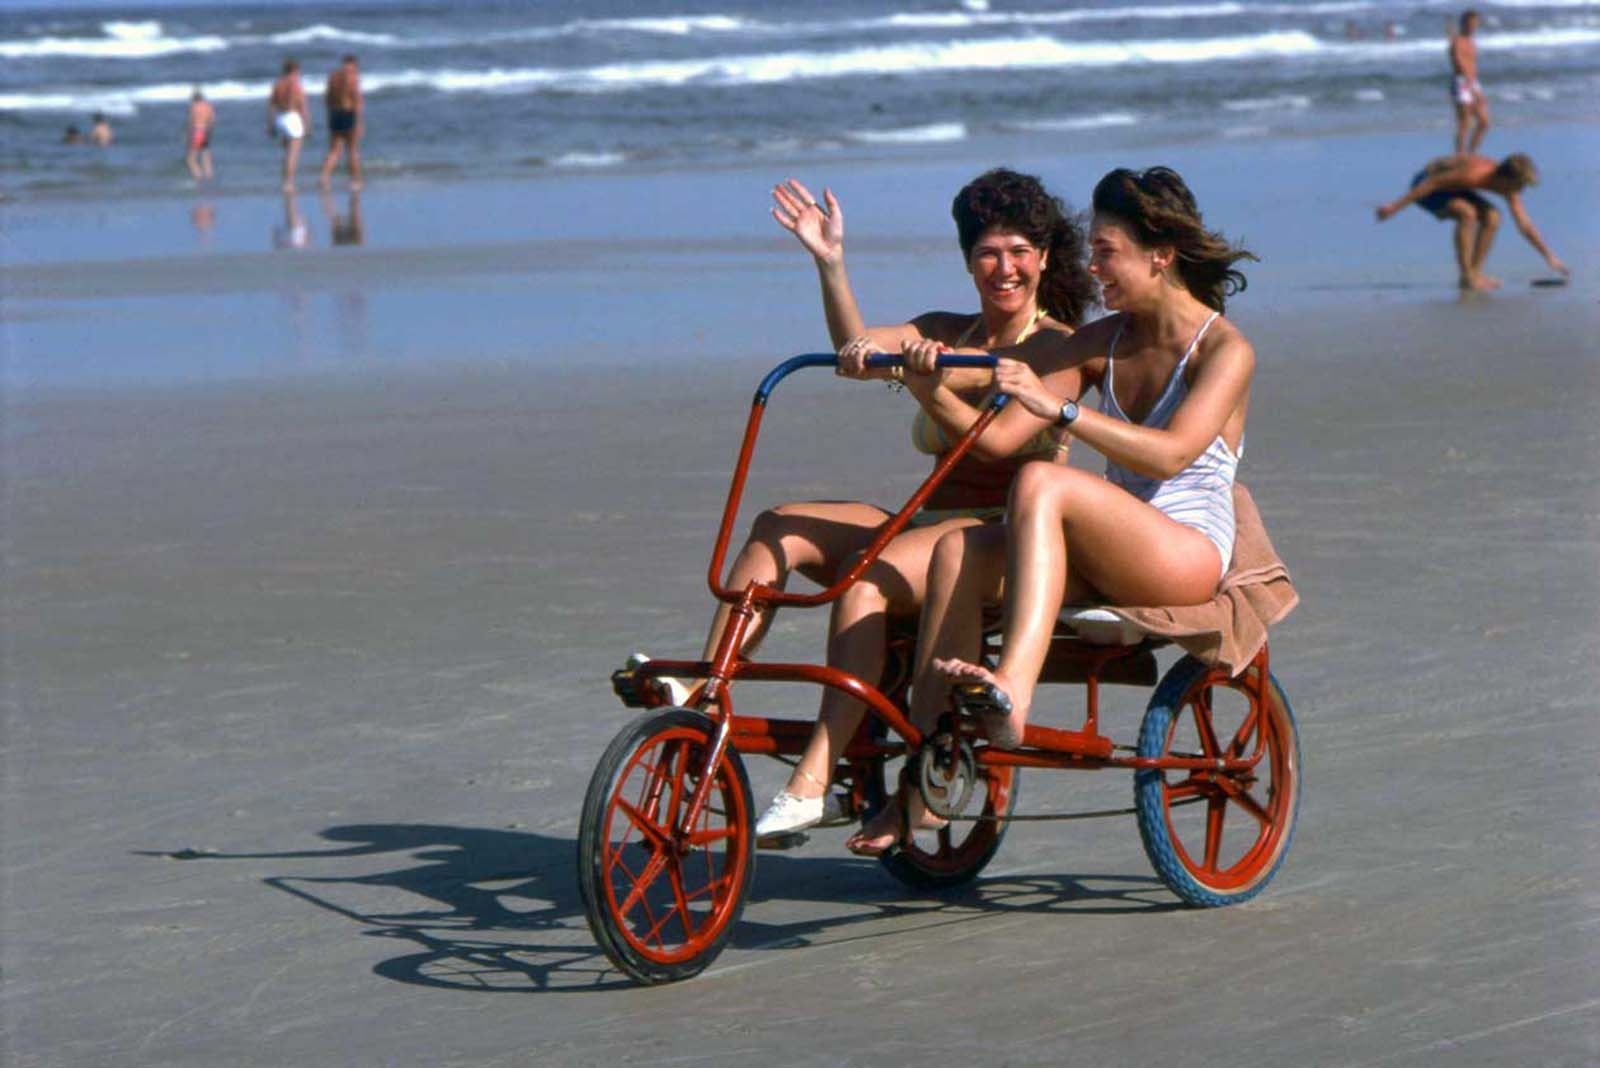 A tricycle made for two at Daytona. 1983.